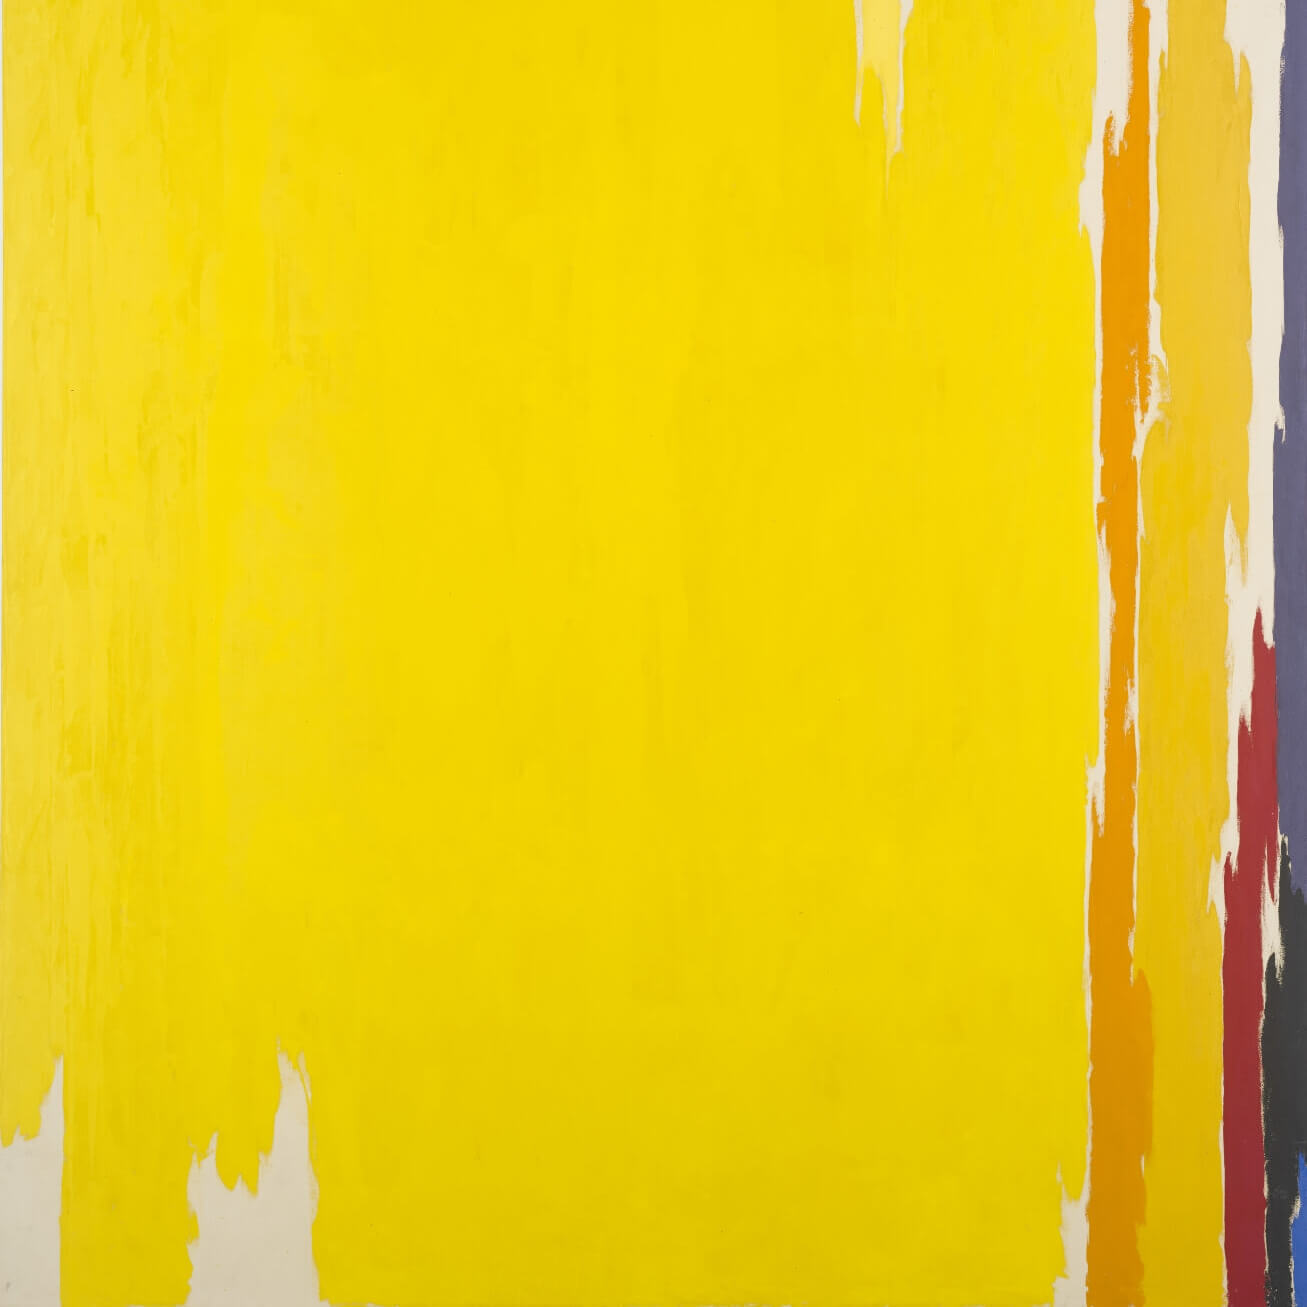 Large yellow abstract painting with small streaks of orange, red, purple and white on one edge